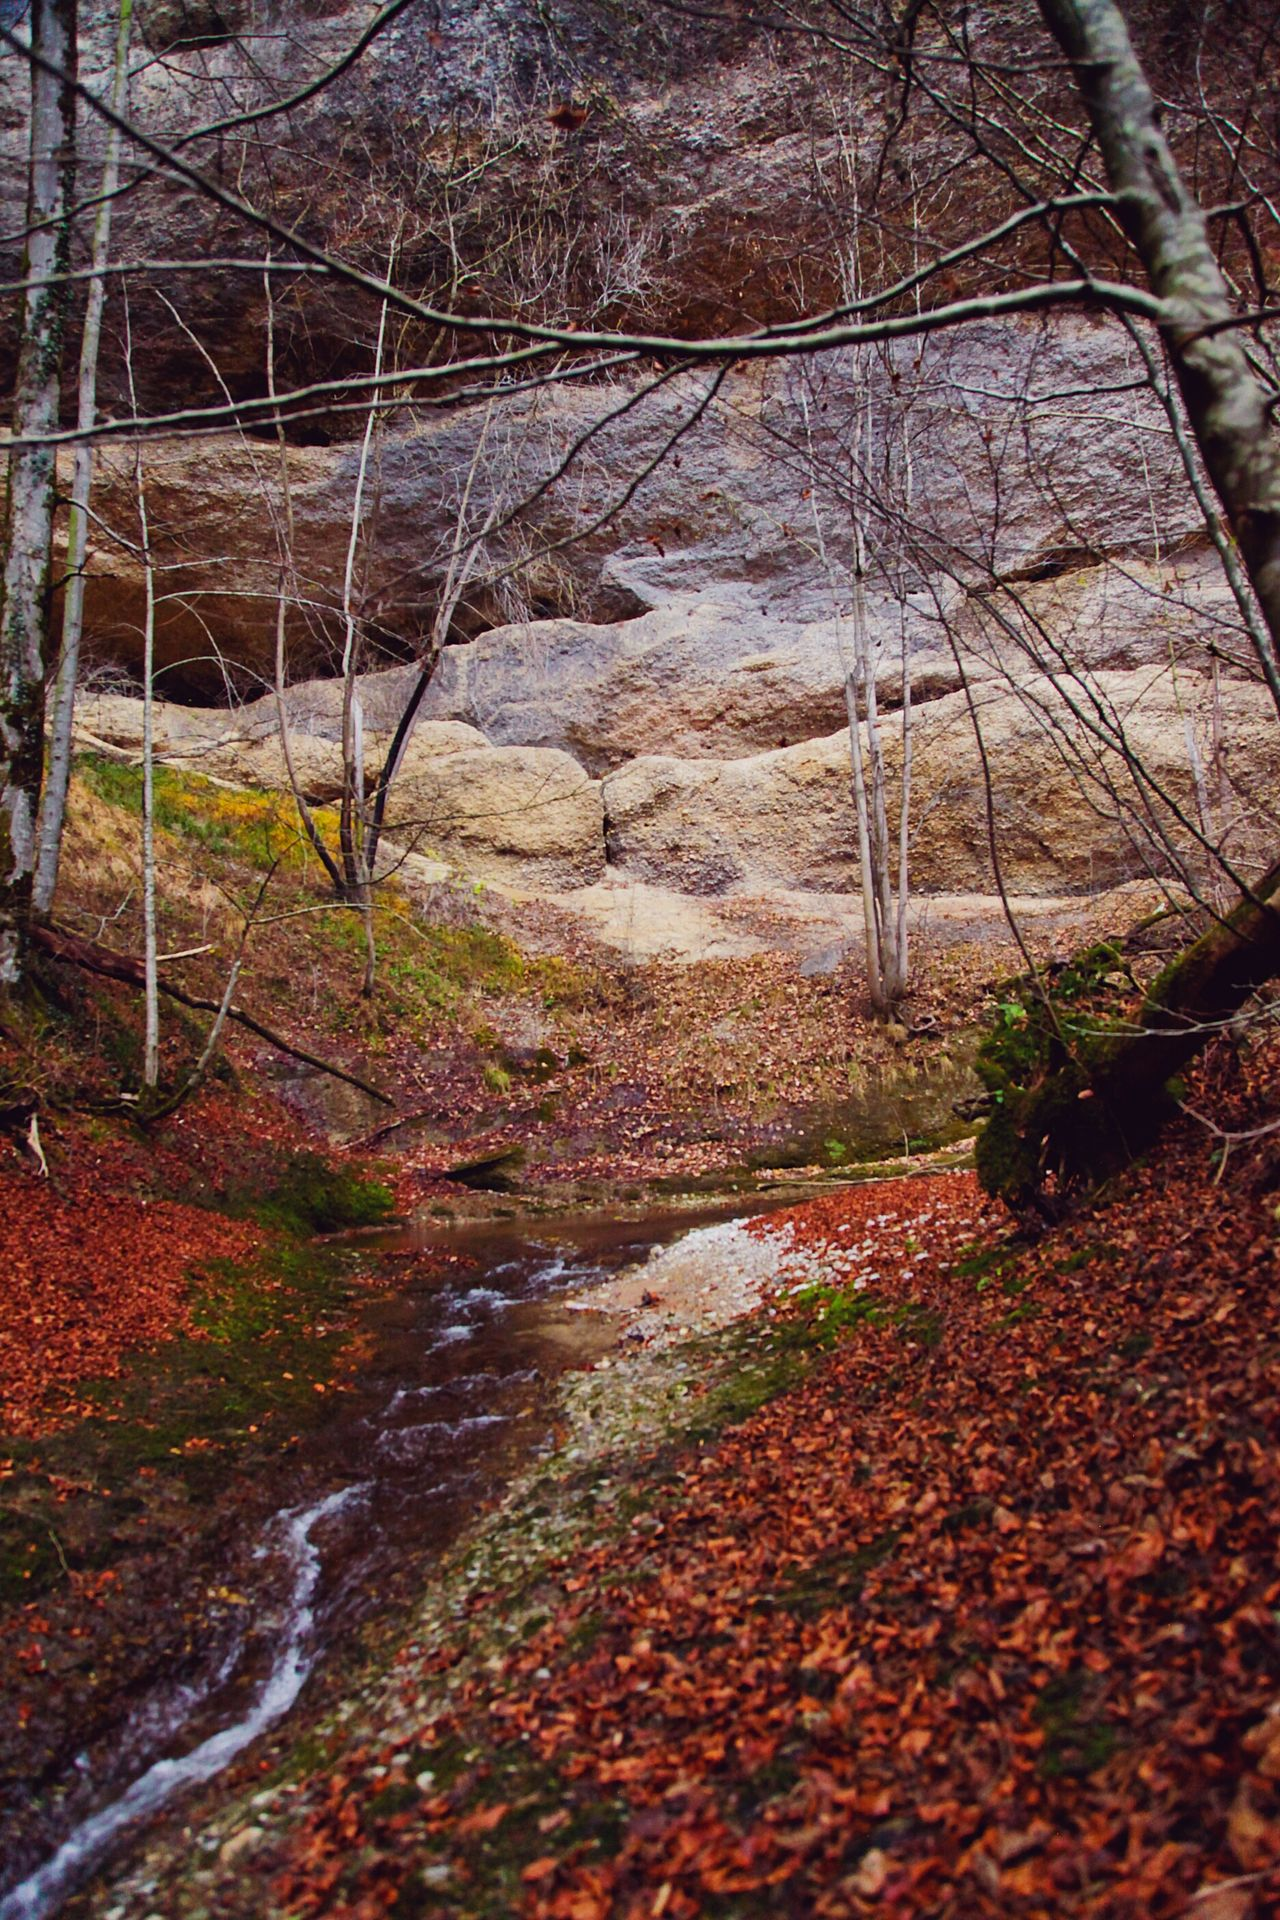 Tree Forest Stream Leafes Autumn Rocks Rock Wall With Trees Rock Wall Nature Landscape Leaf Autumn No People Nature Day EyeEmNewHere